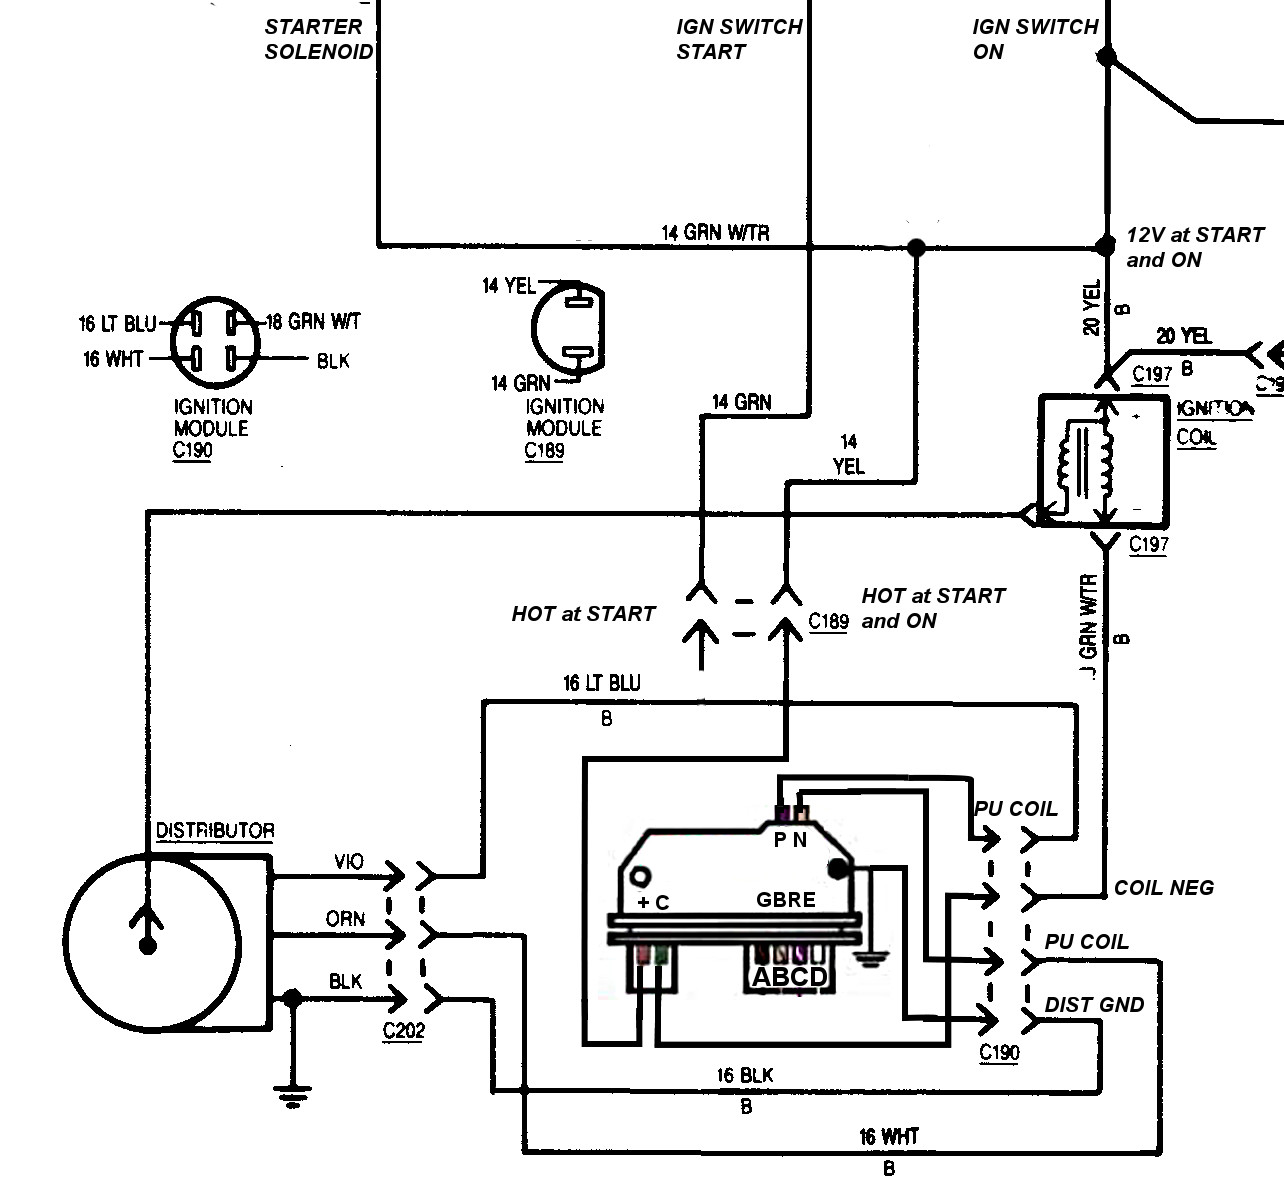 hight resolution of 5 pin gm hei ignition module wiring diagram images gallery